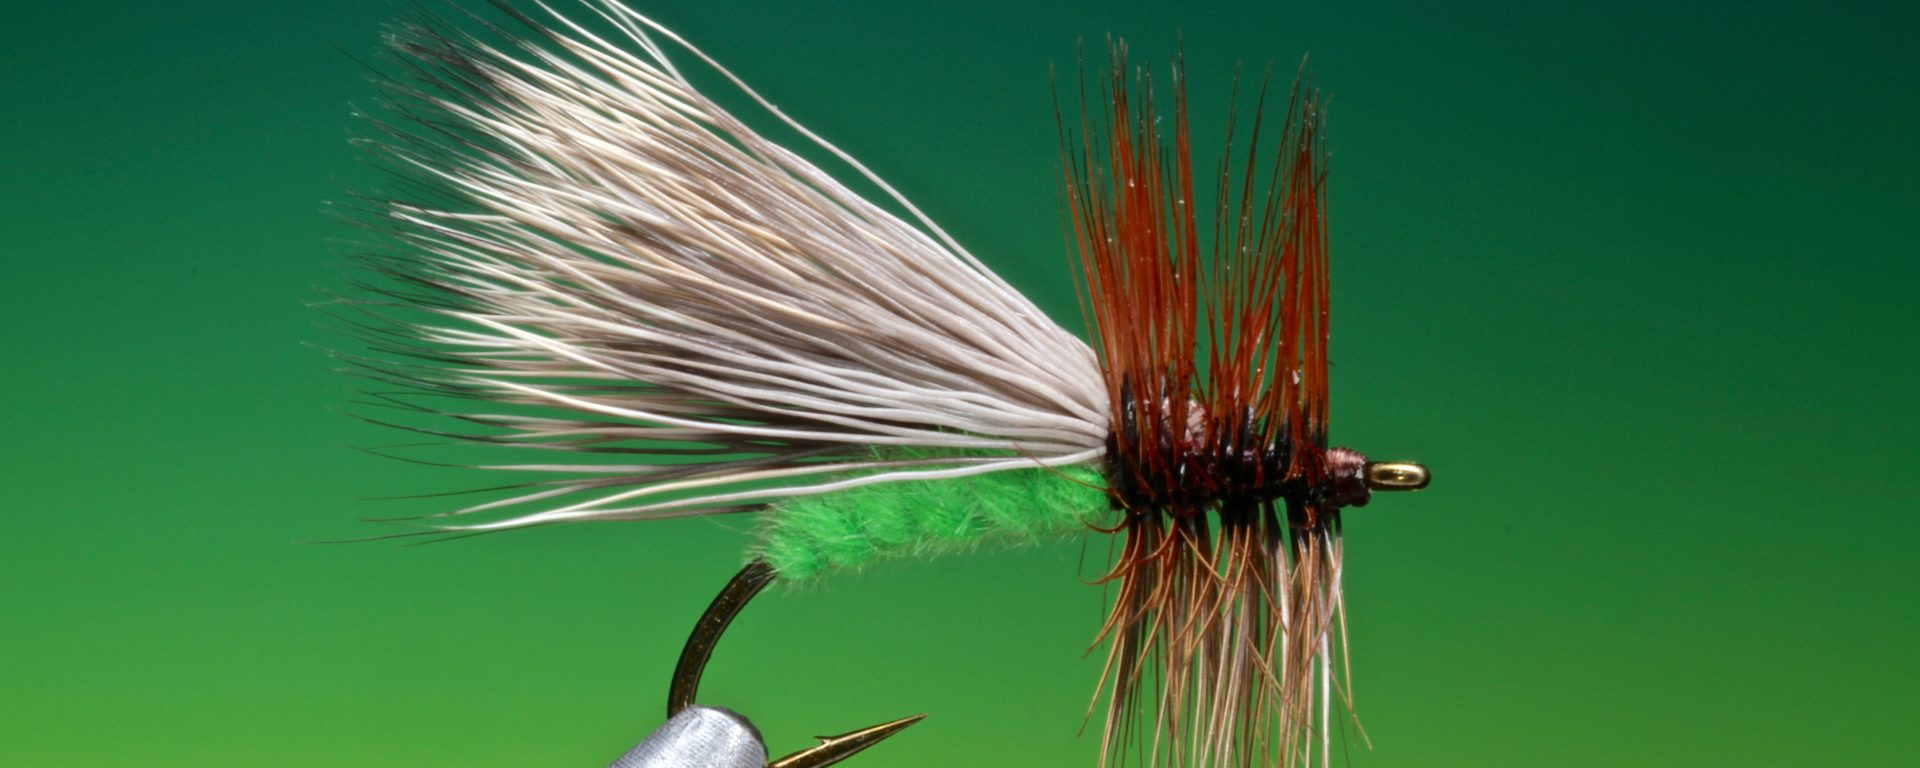 fly tying The fluttering caddis